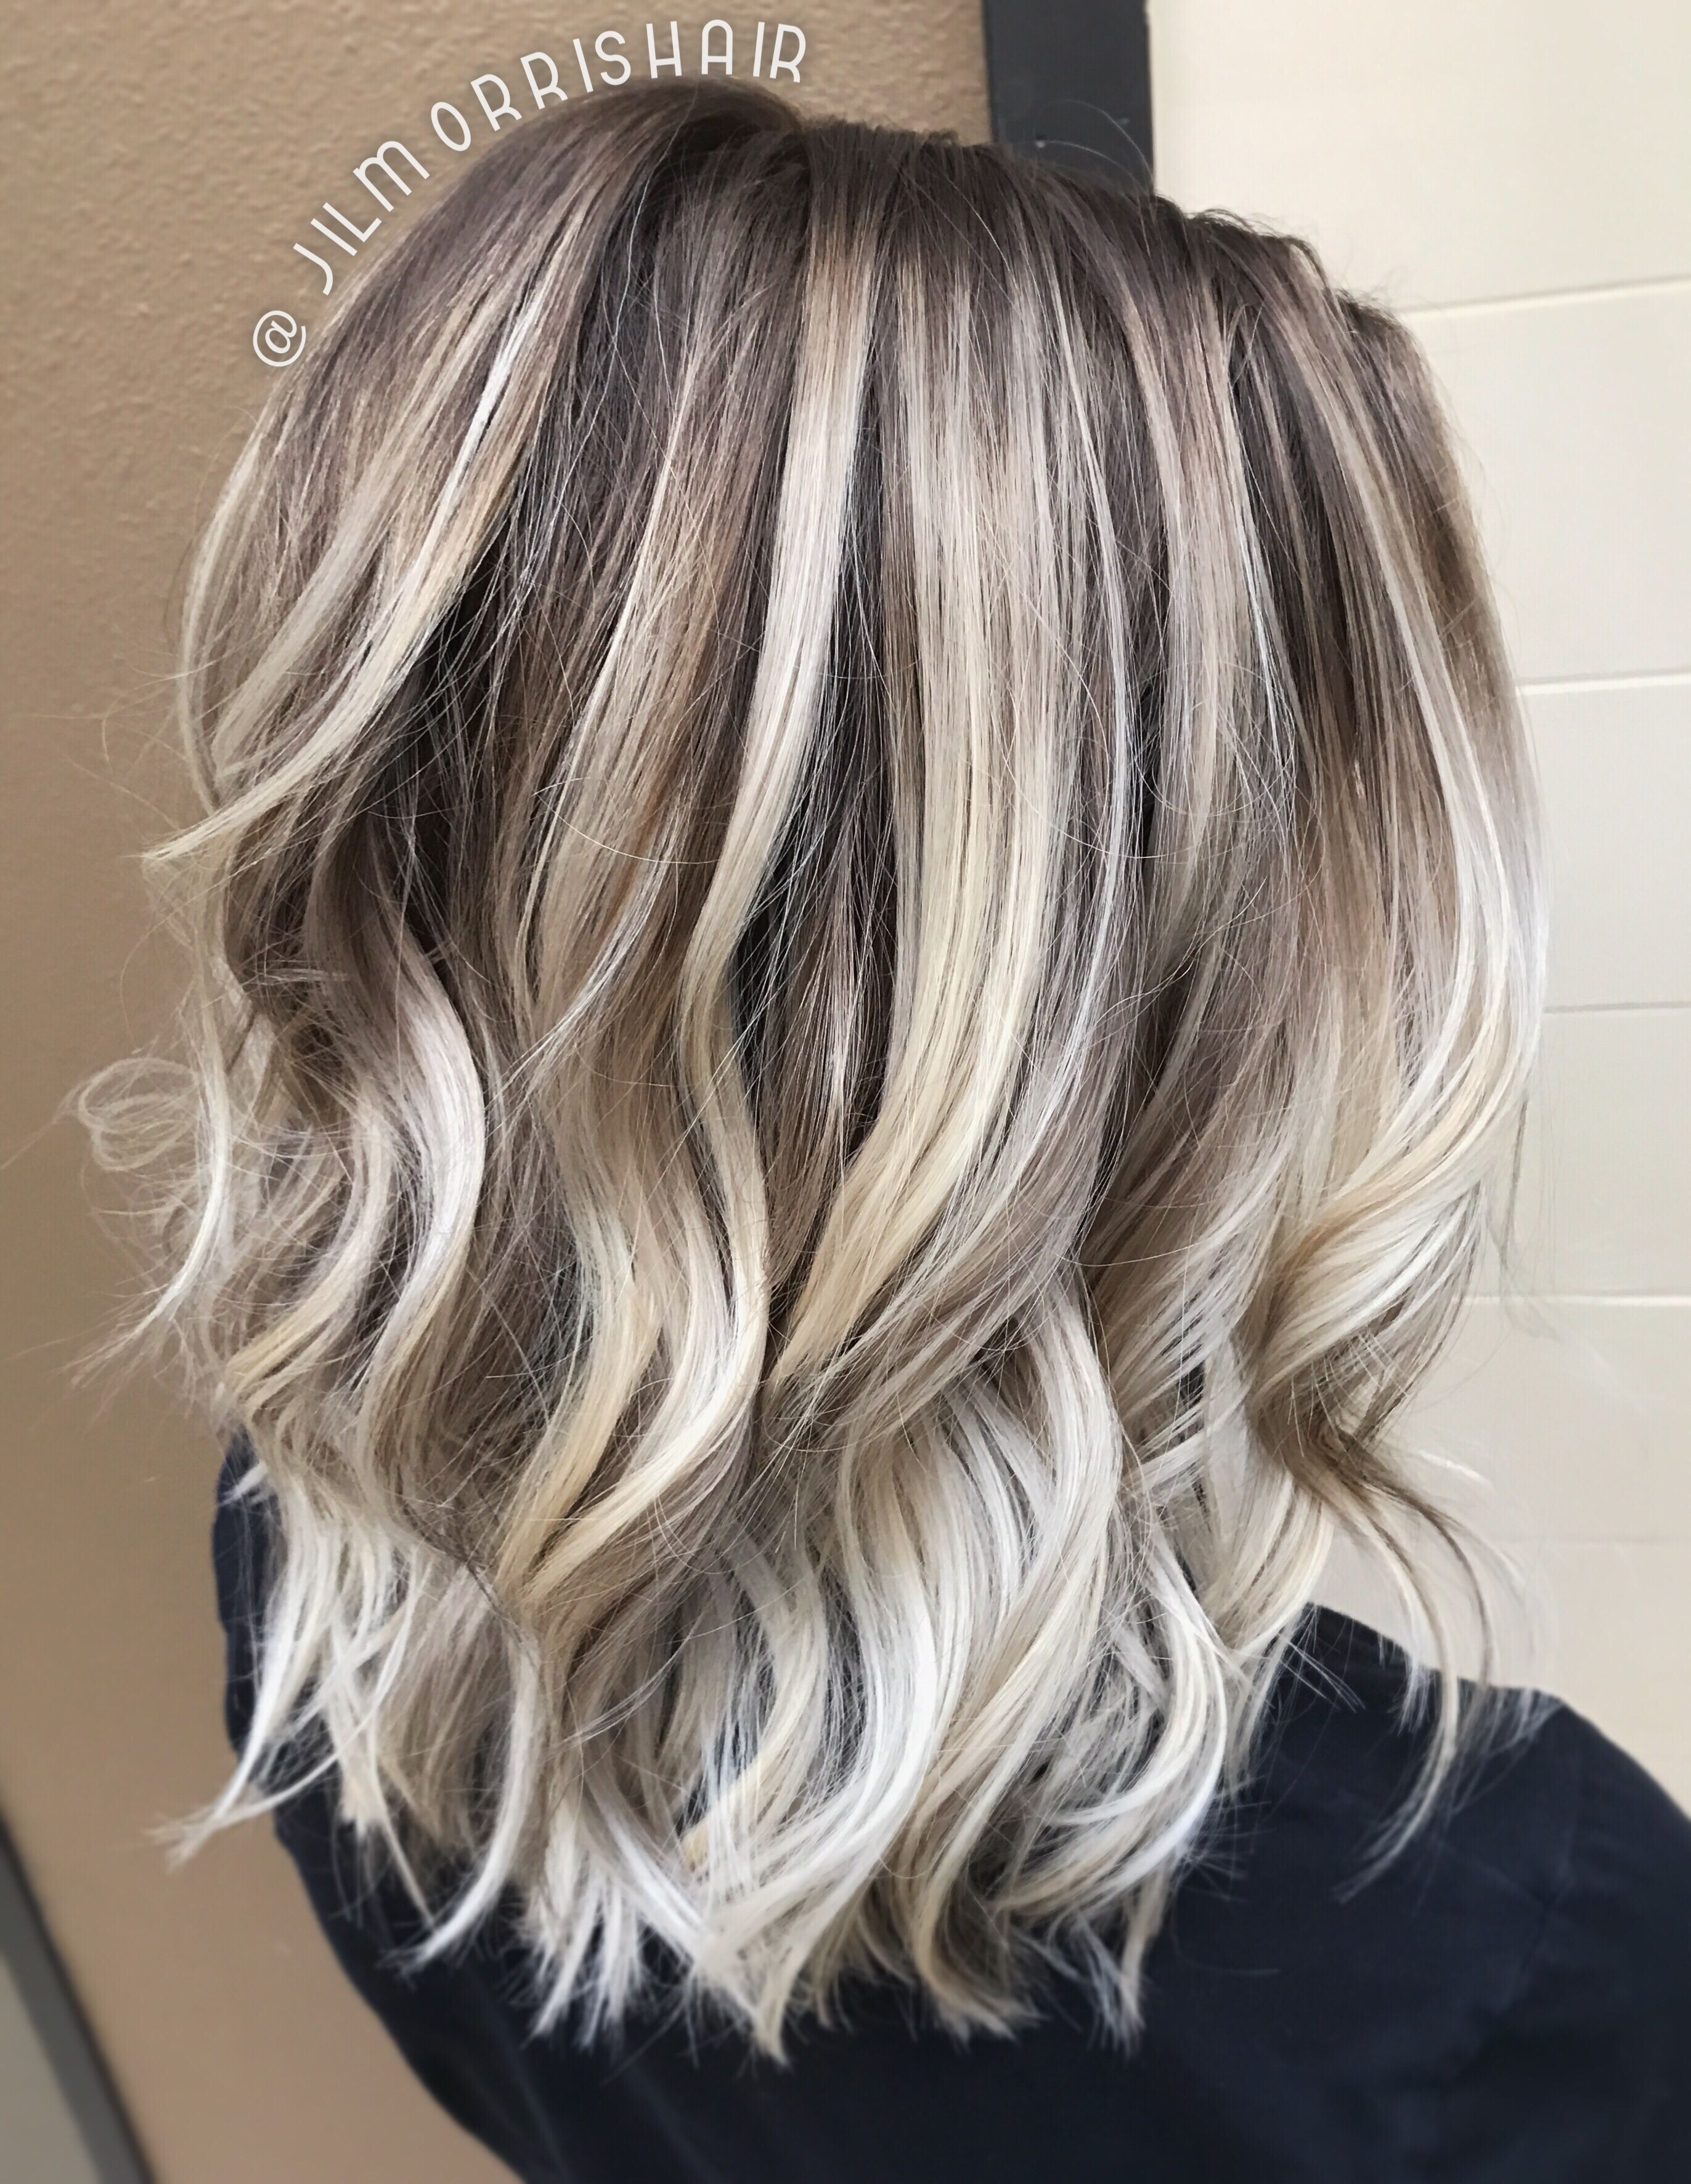 Cool icy ashy blonde balayage highlights shadow root waves and